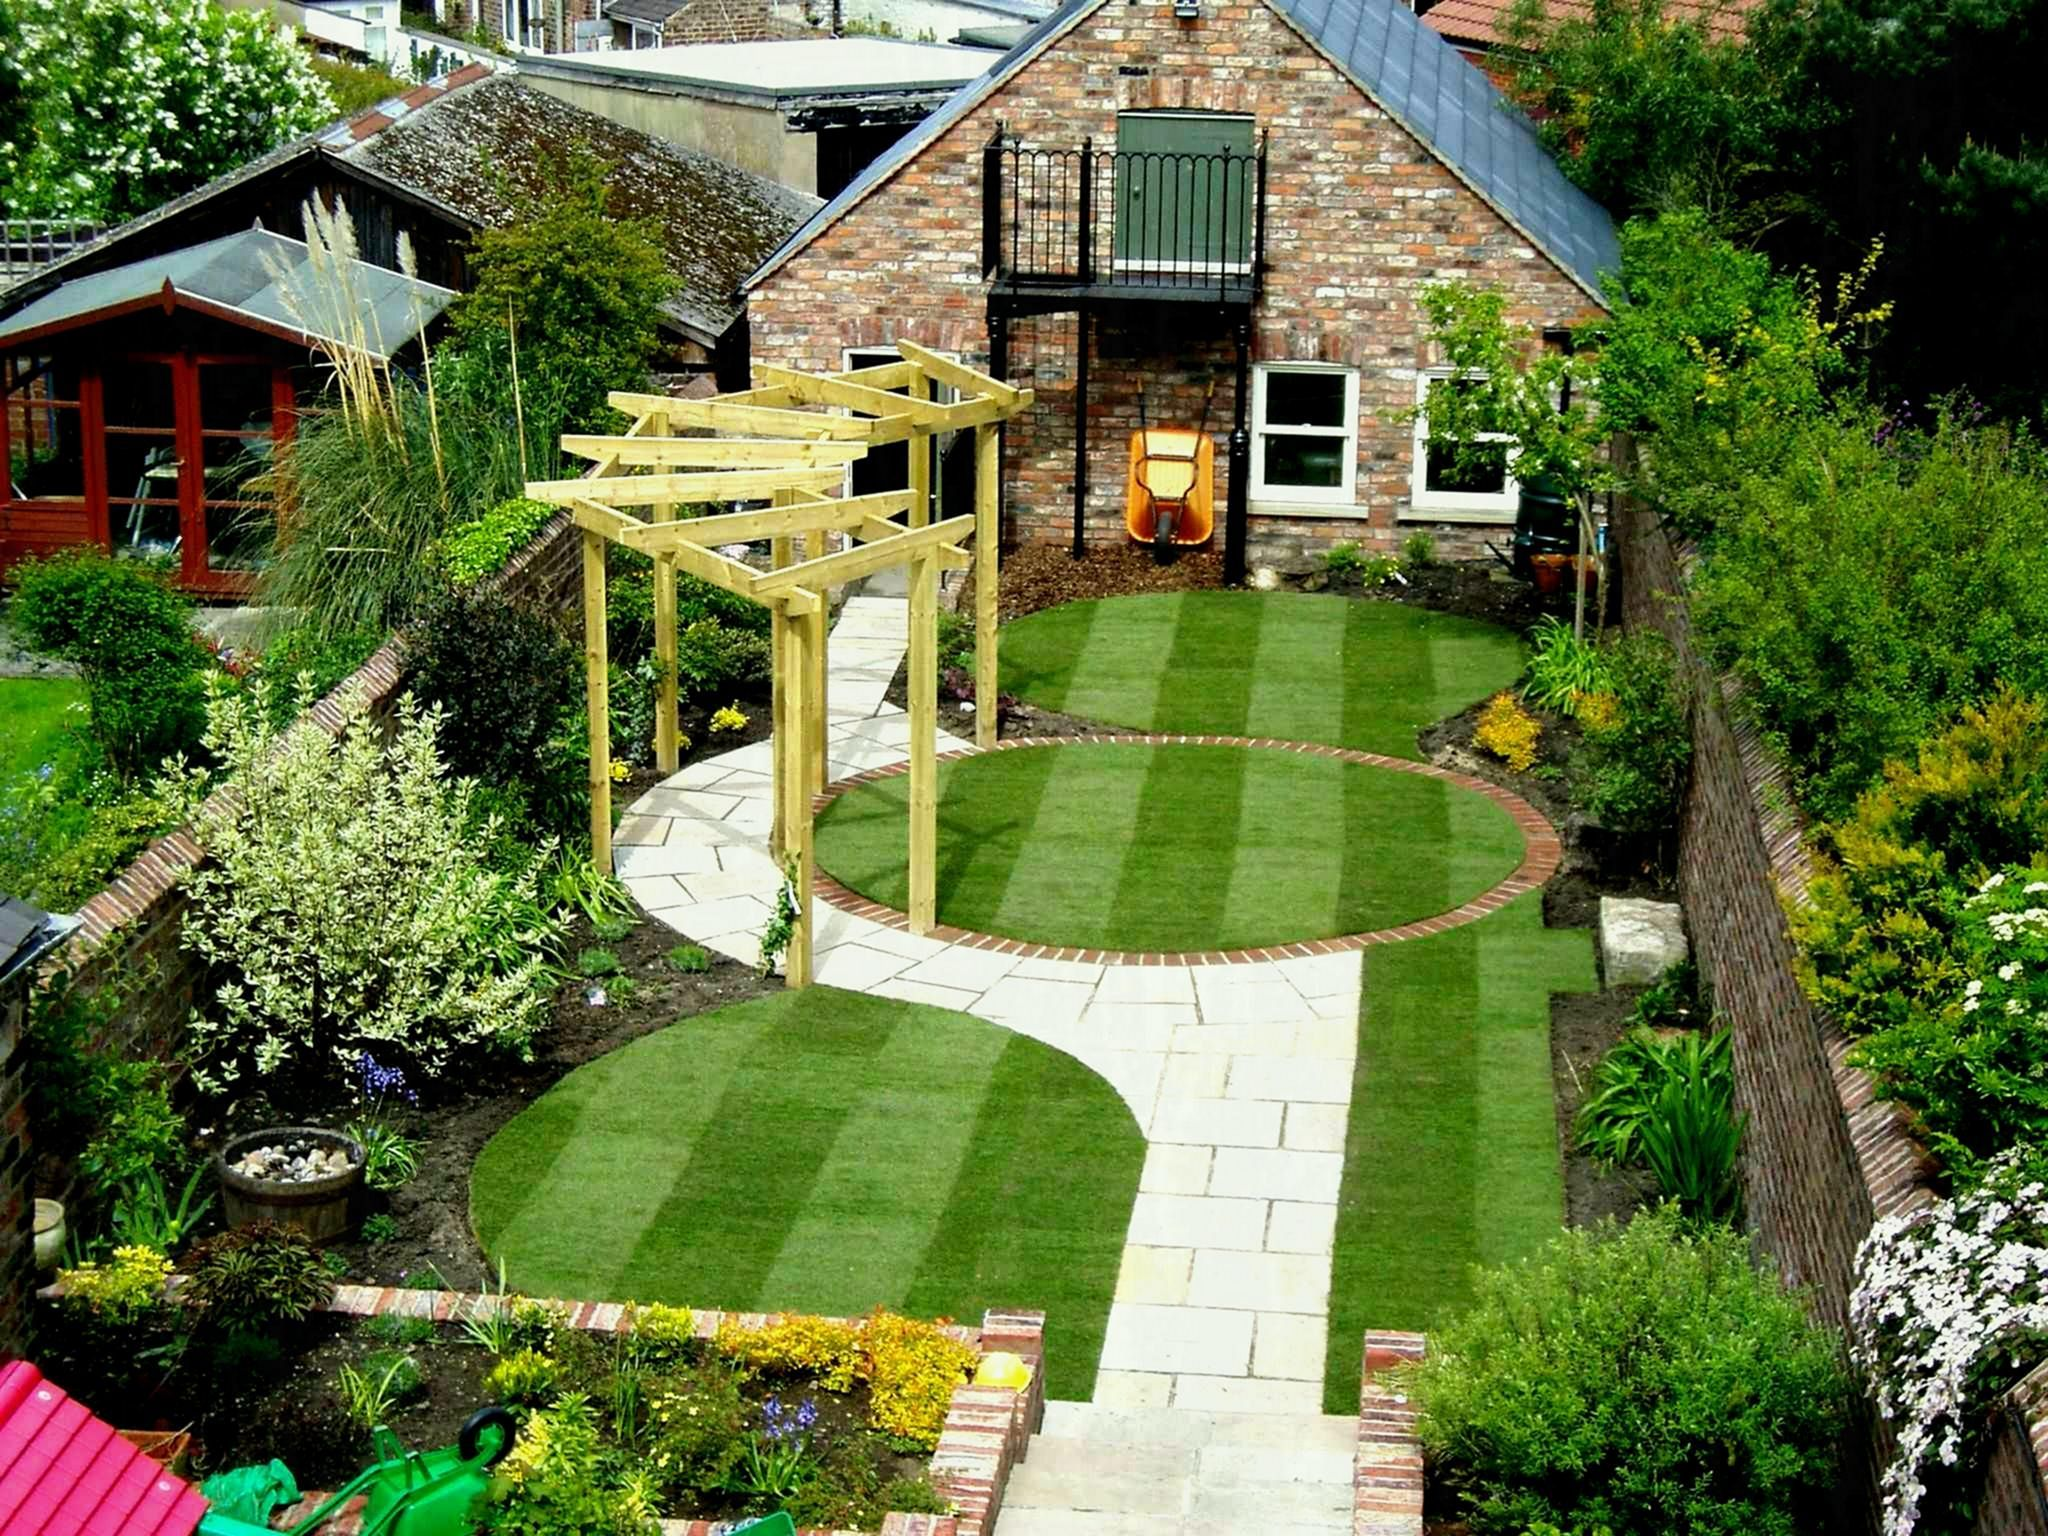 9d922fb75966b422084d16d4771f9ec4 - Pictures Of Beautiful Gardens For Small Homes